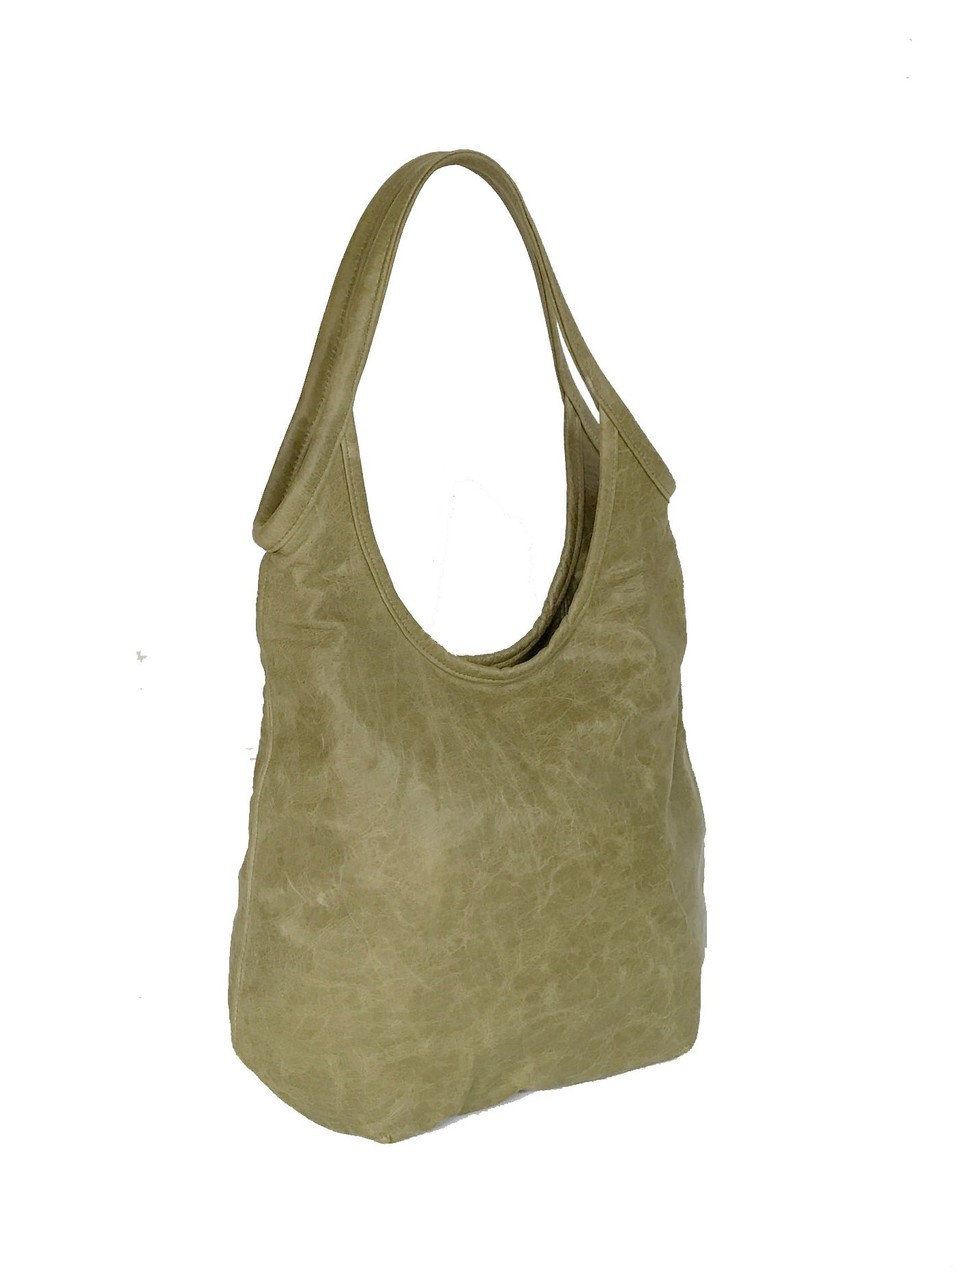 7a6785982c Distressed Green Leather Hobo Bag